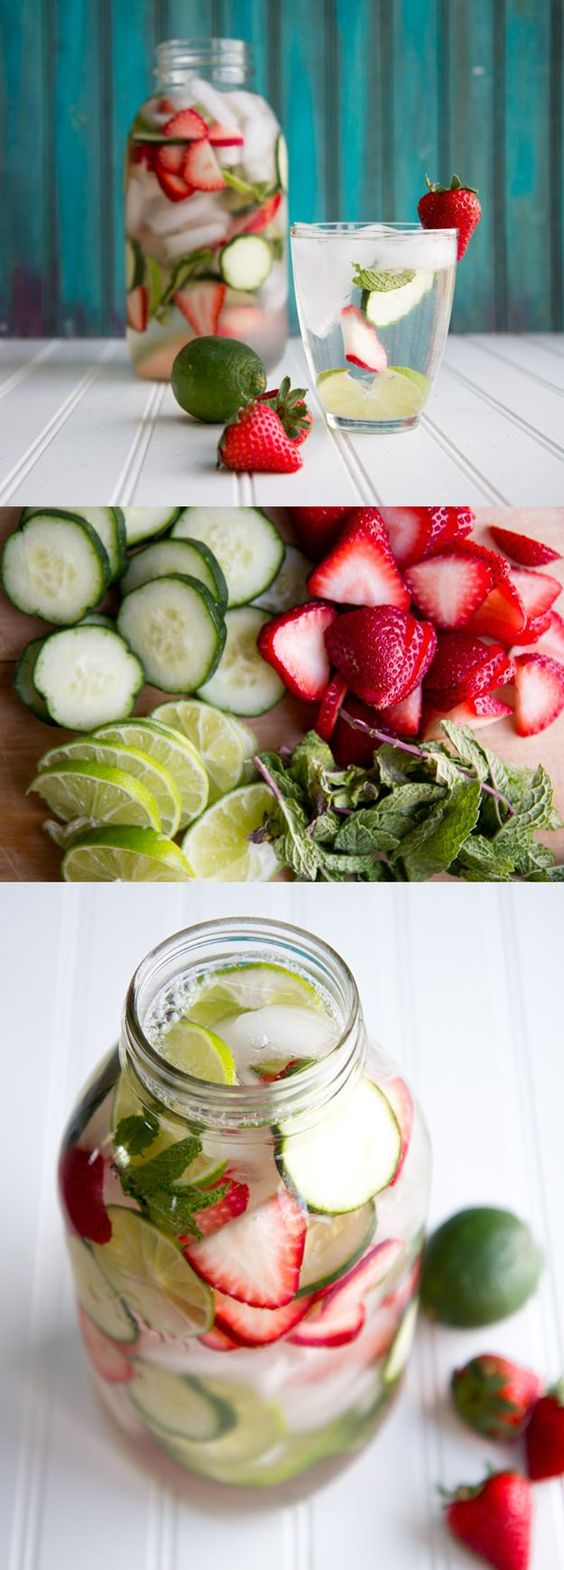 The perfect combination of flavors! Strawberry, Cucumber, Lime and Mint Flavored Water Recipe | Easy DIY Detox Water Recipe by DIY Ready at http://diyready.com/diy-recipes-detox-waters/: